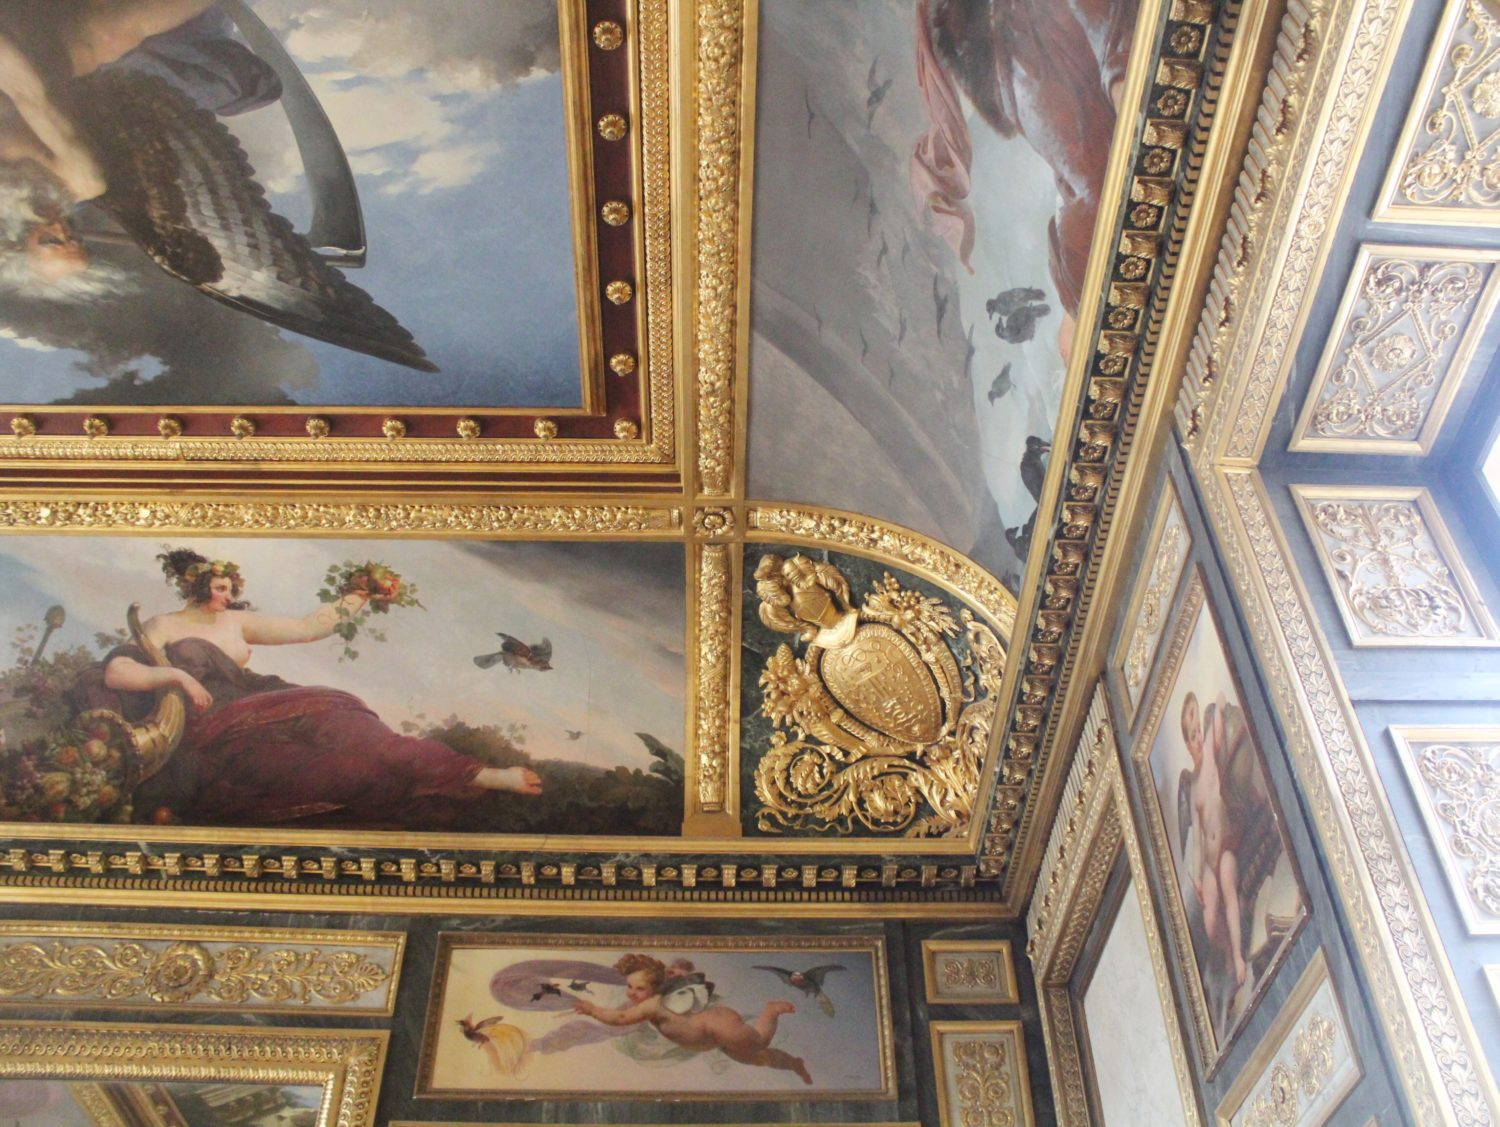 The Ceilings at The Louvre